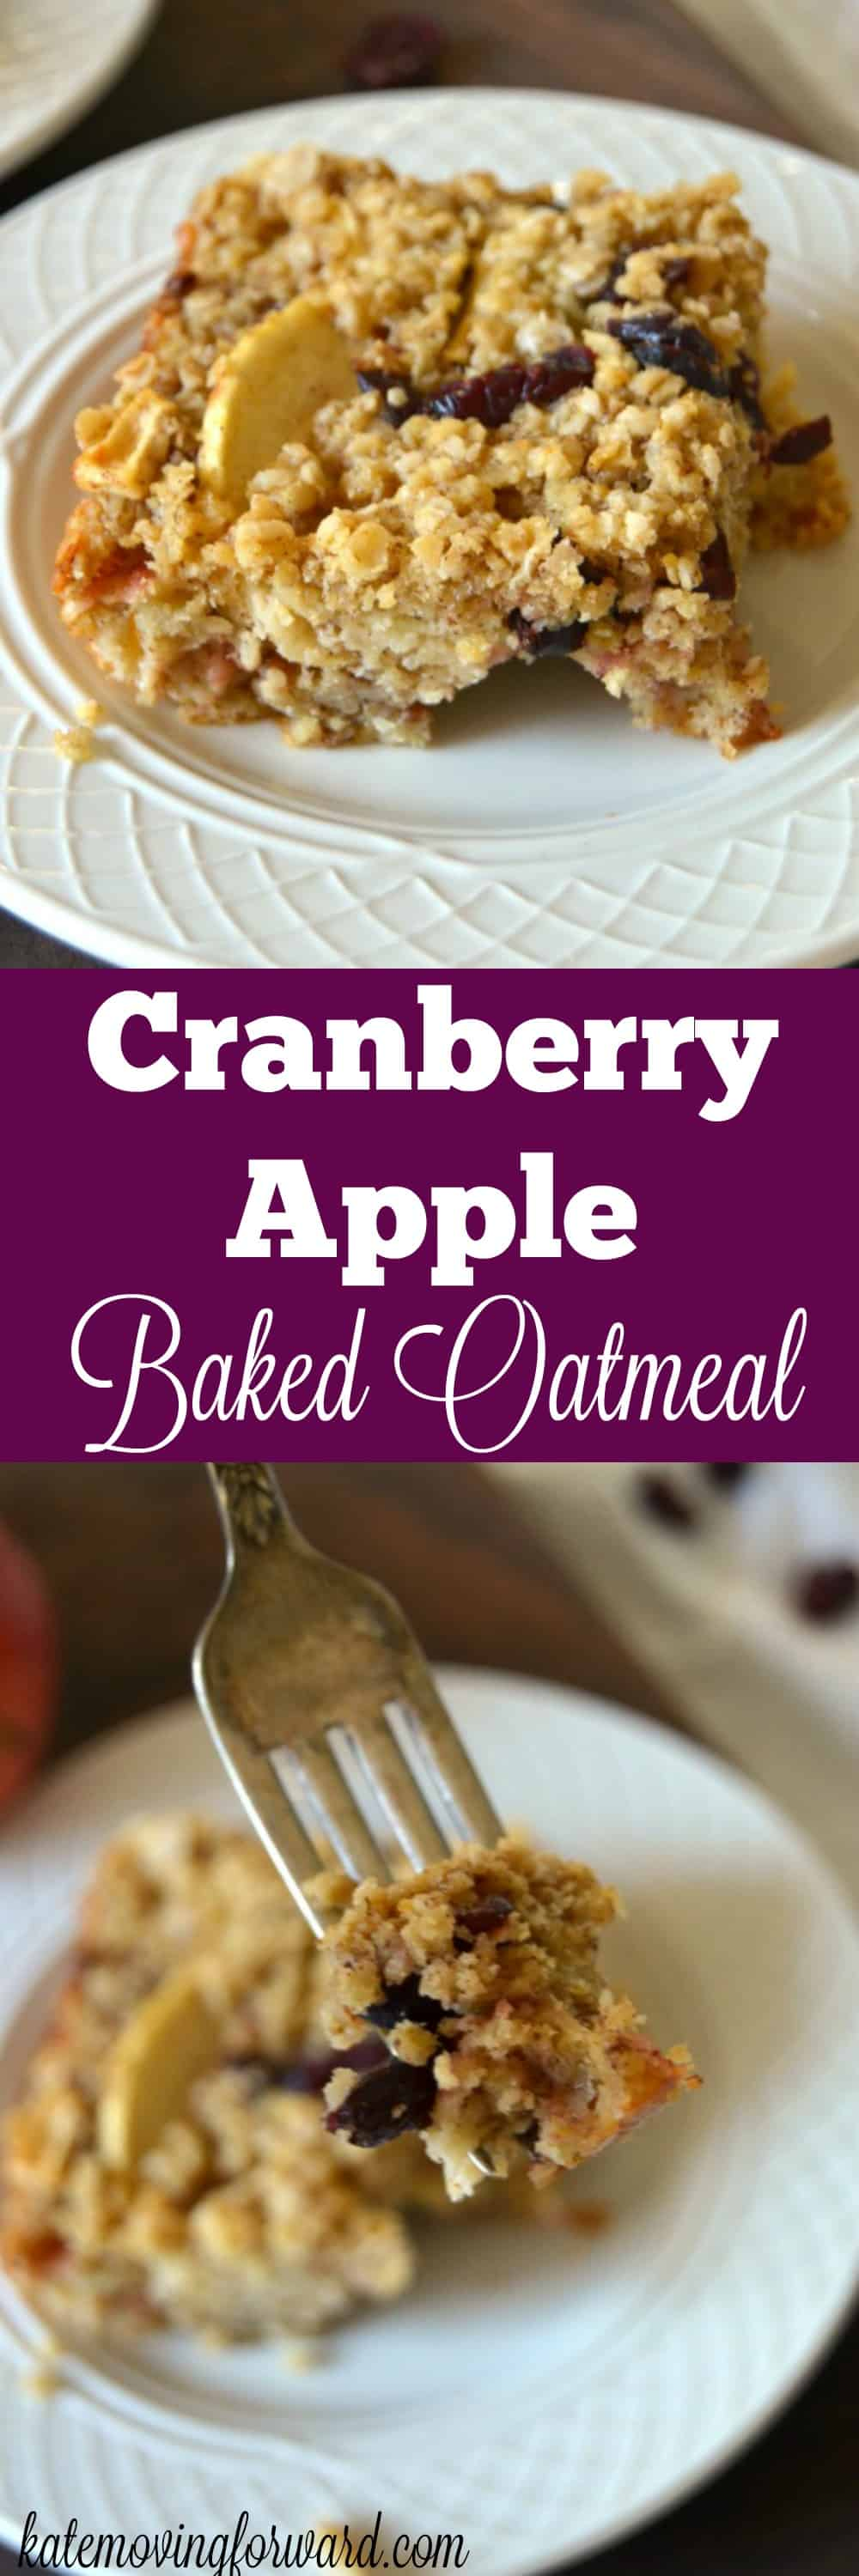 Enjoy the sweet flavor of Apple Cranberry Baked Oatmeal for breakfast this holiday season! Simple, healthy and delicious!